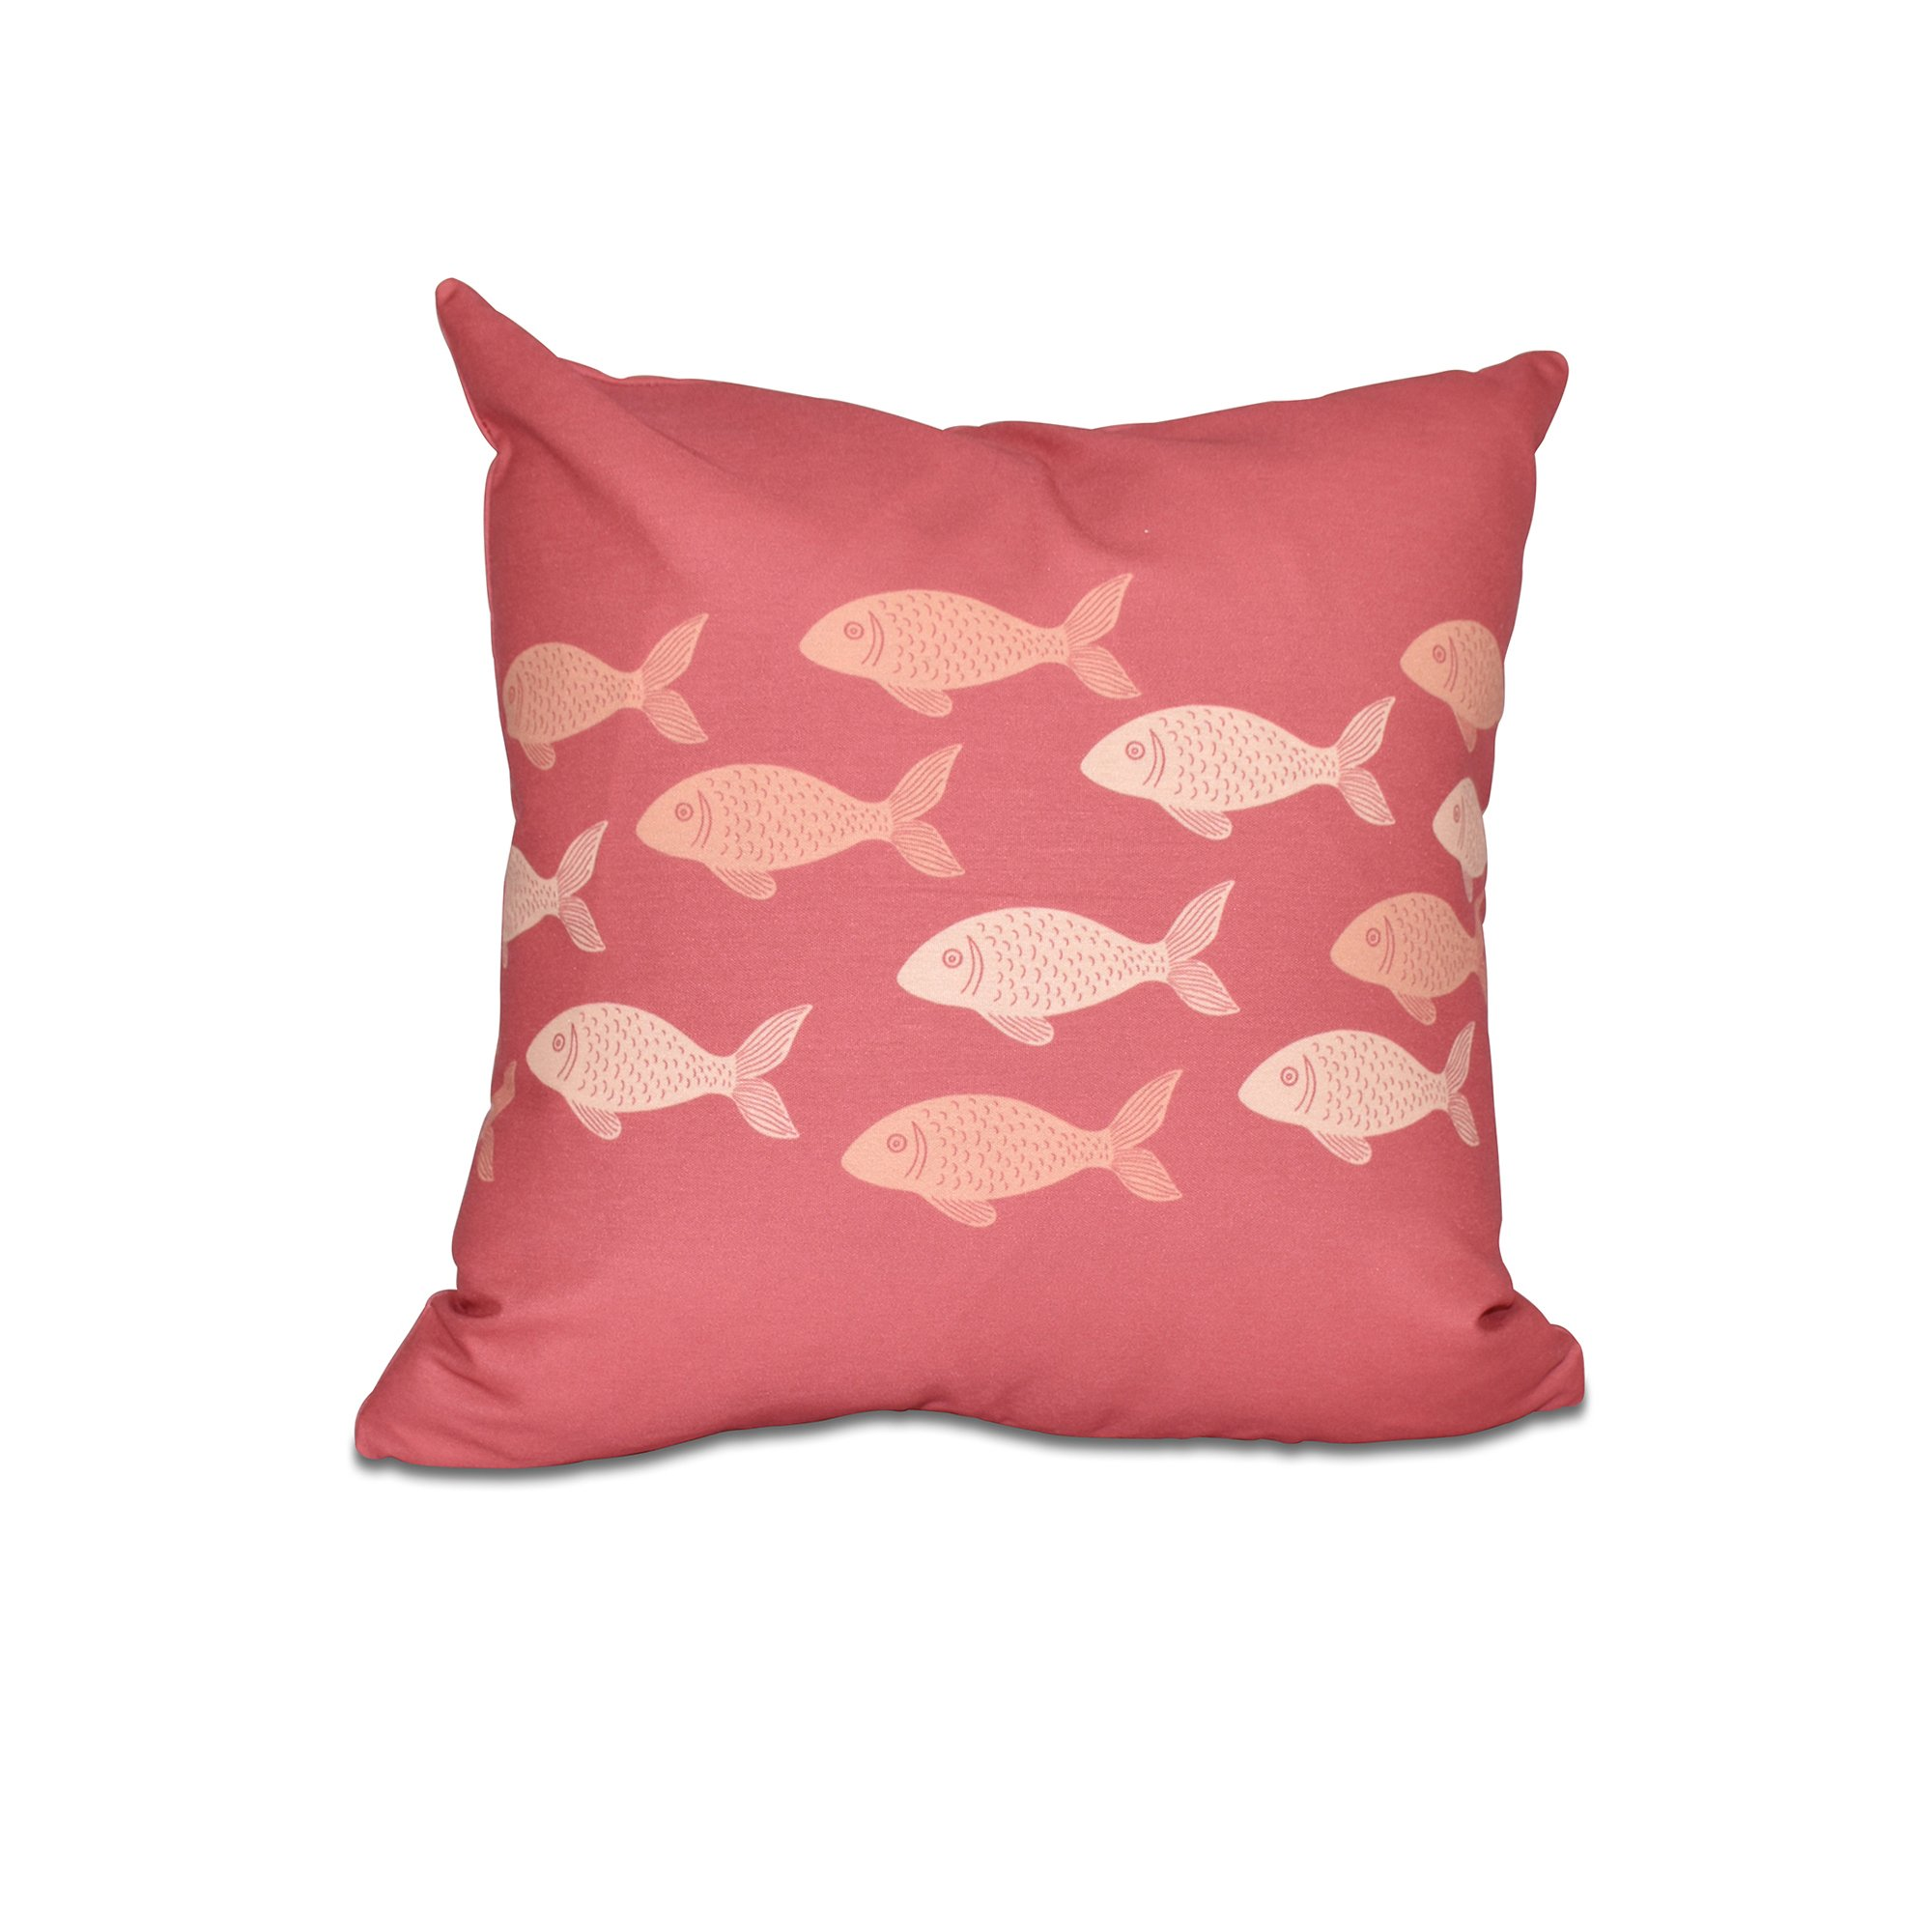 E by design 20 x 20'' Fish Line Animal Print Coral Pillow